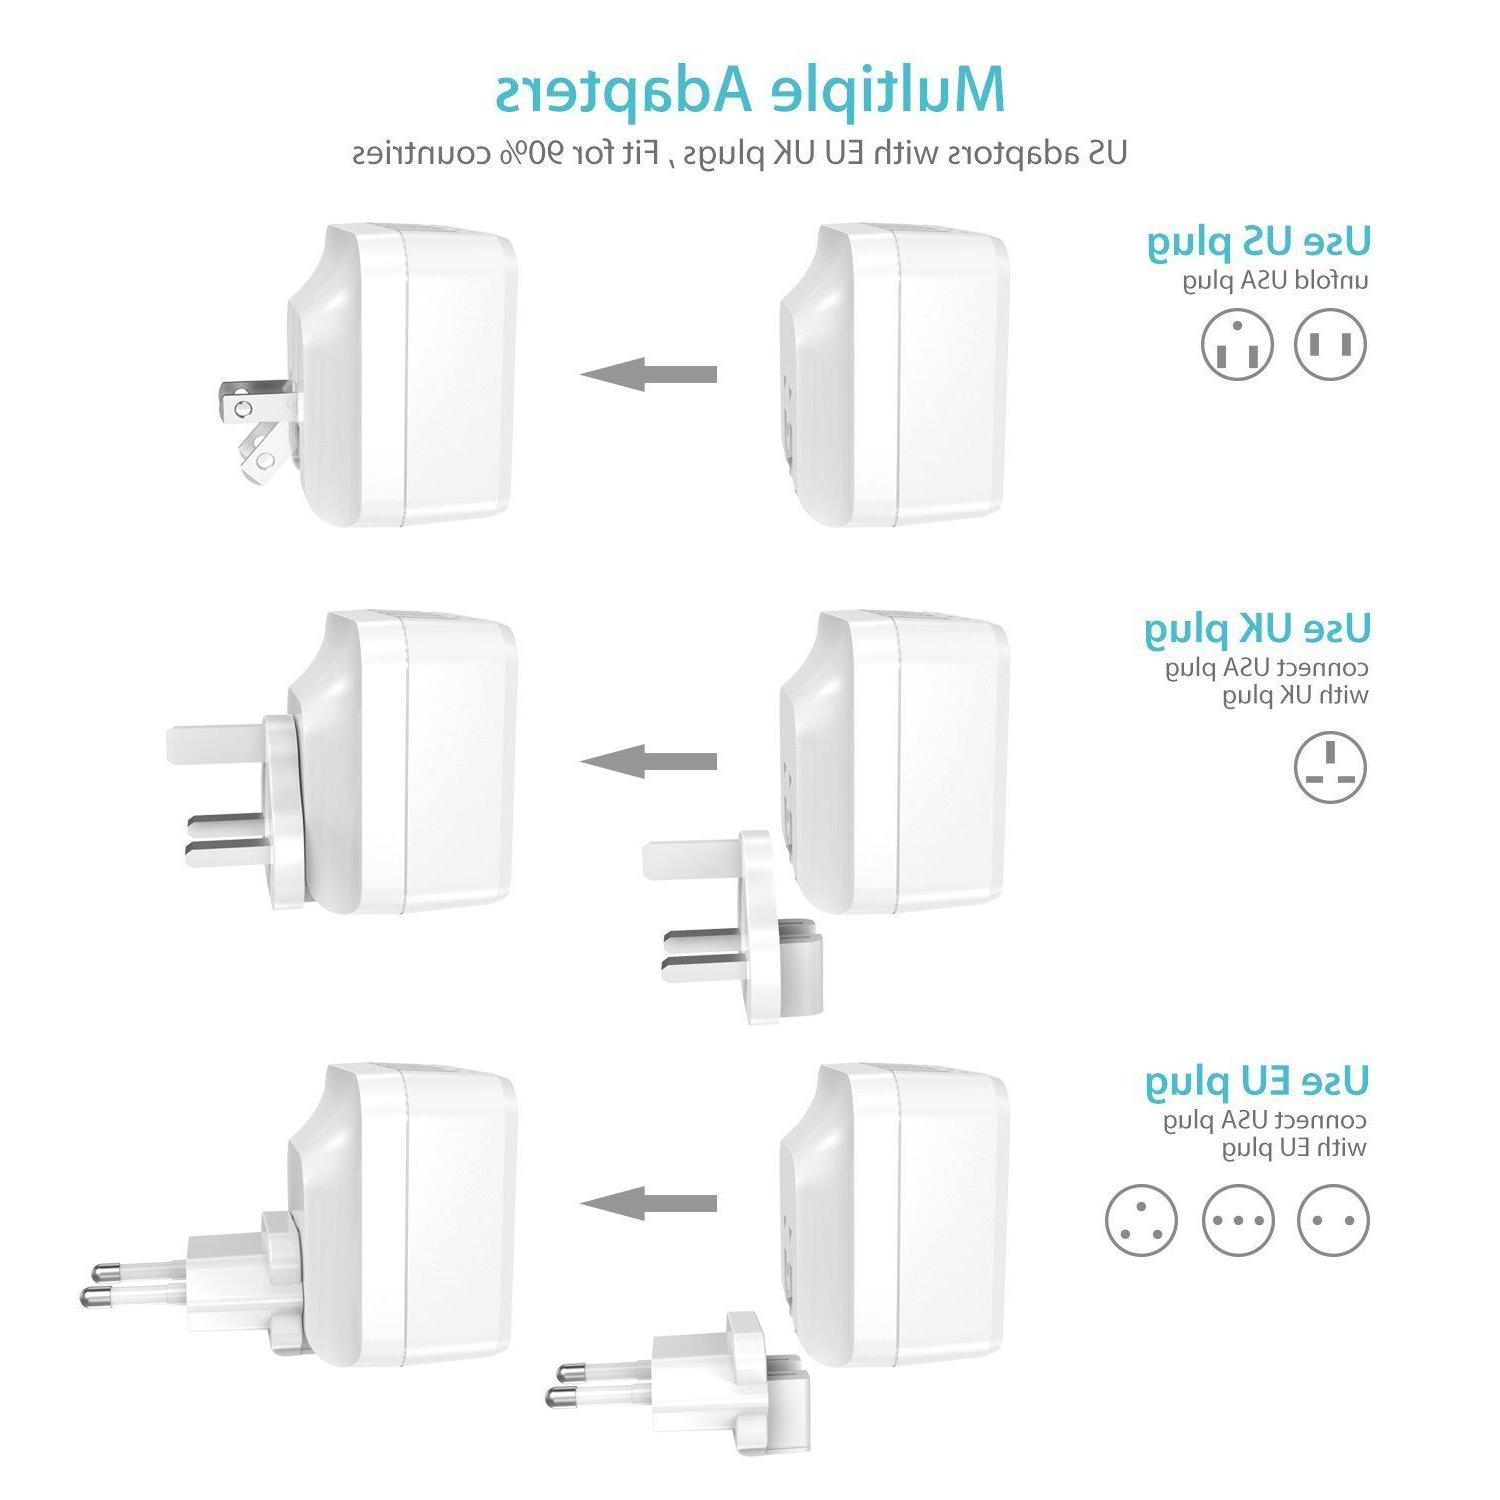 Syncwire 4-Port Charger USB UK EU Travel for iPhone